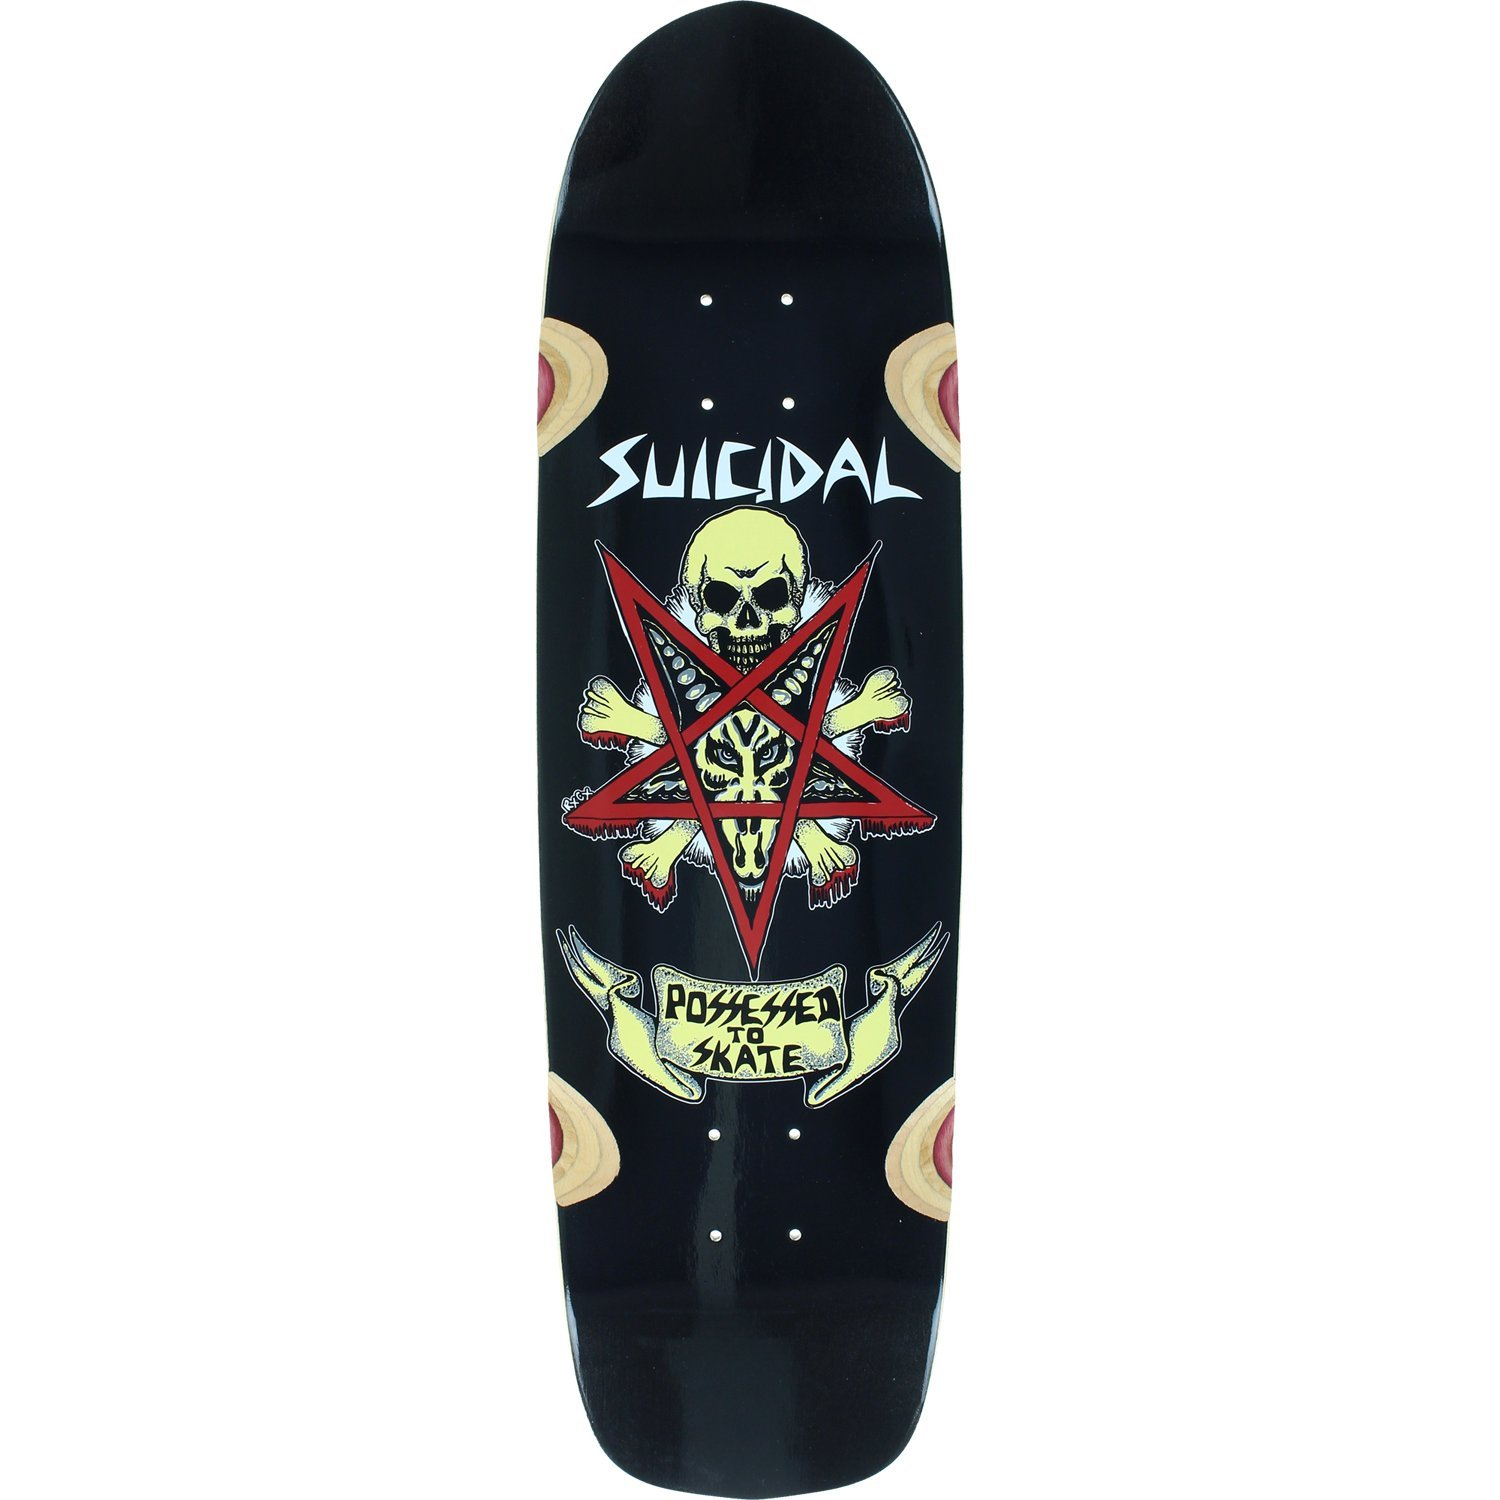 Suicidal Skates PTS Pool Deck -8.75x32.5 Assembled as COMPLETE Skateboard by Suicidal